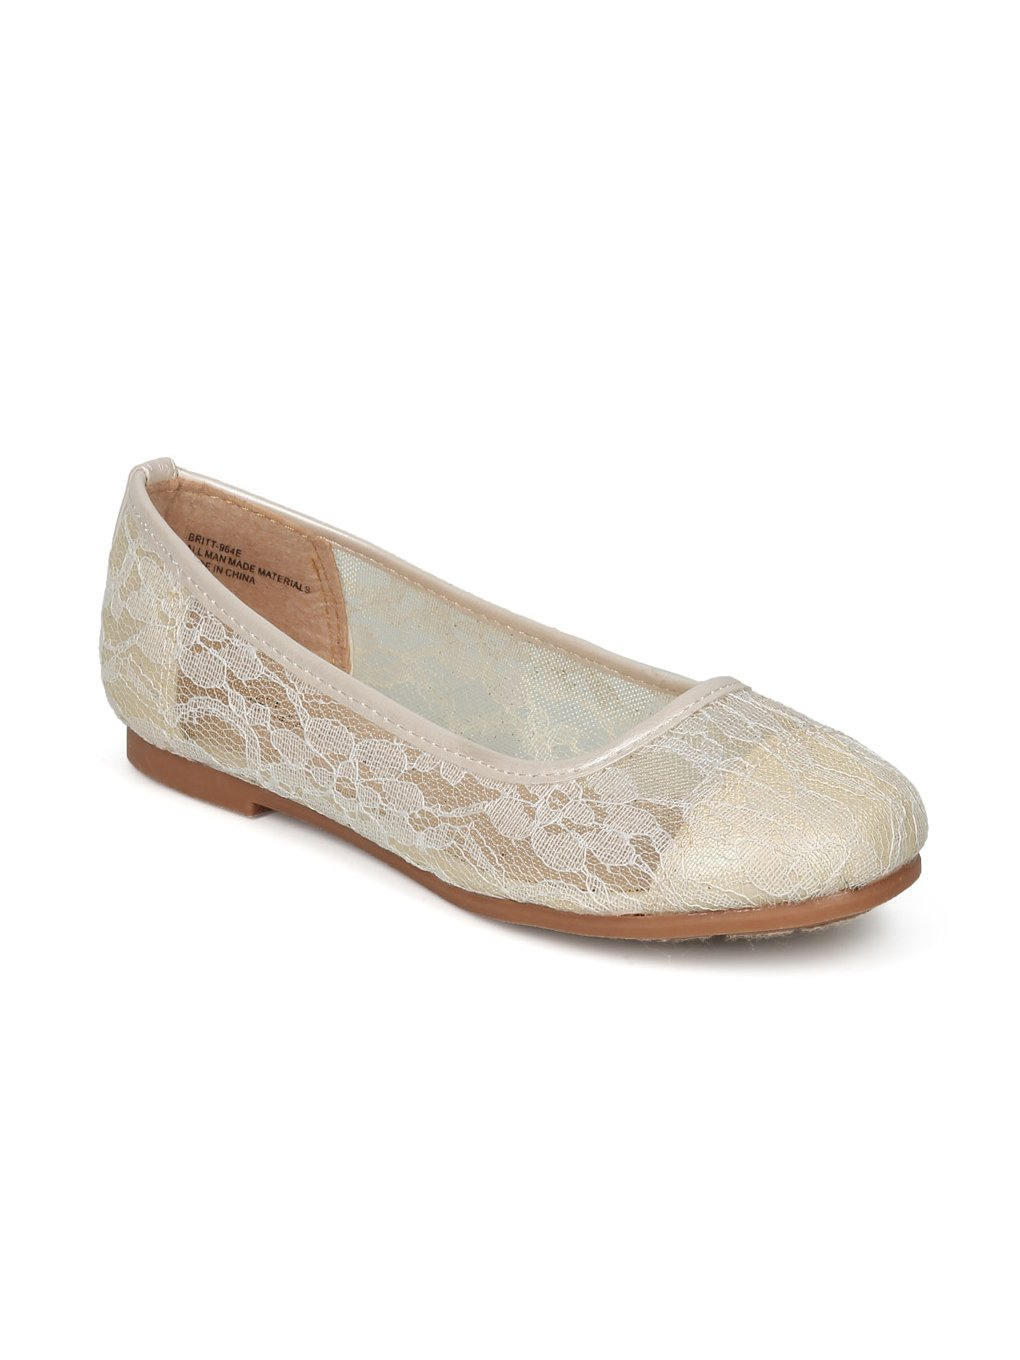 Alrisco Lace Mesh Capped Toe Ballet Flat HF24 - Ivy Mix Media (Size: Little Kid 13)